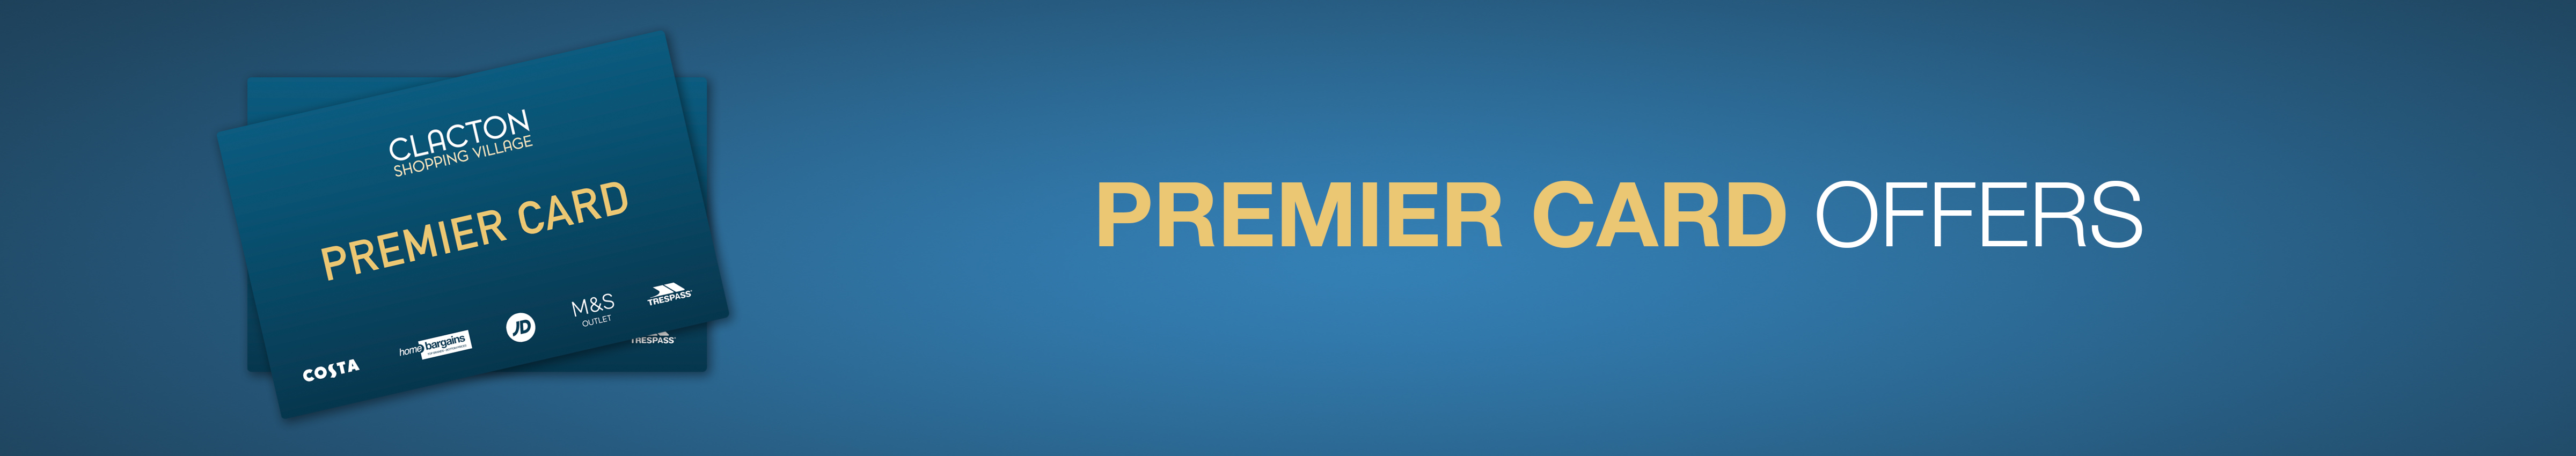 Premier Card Offers